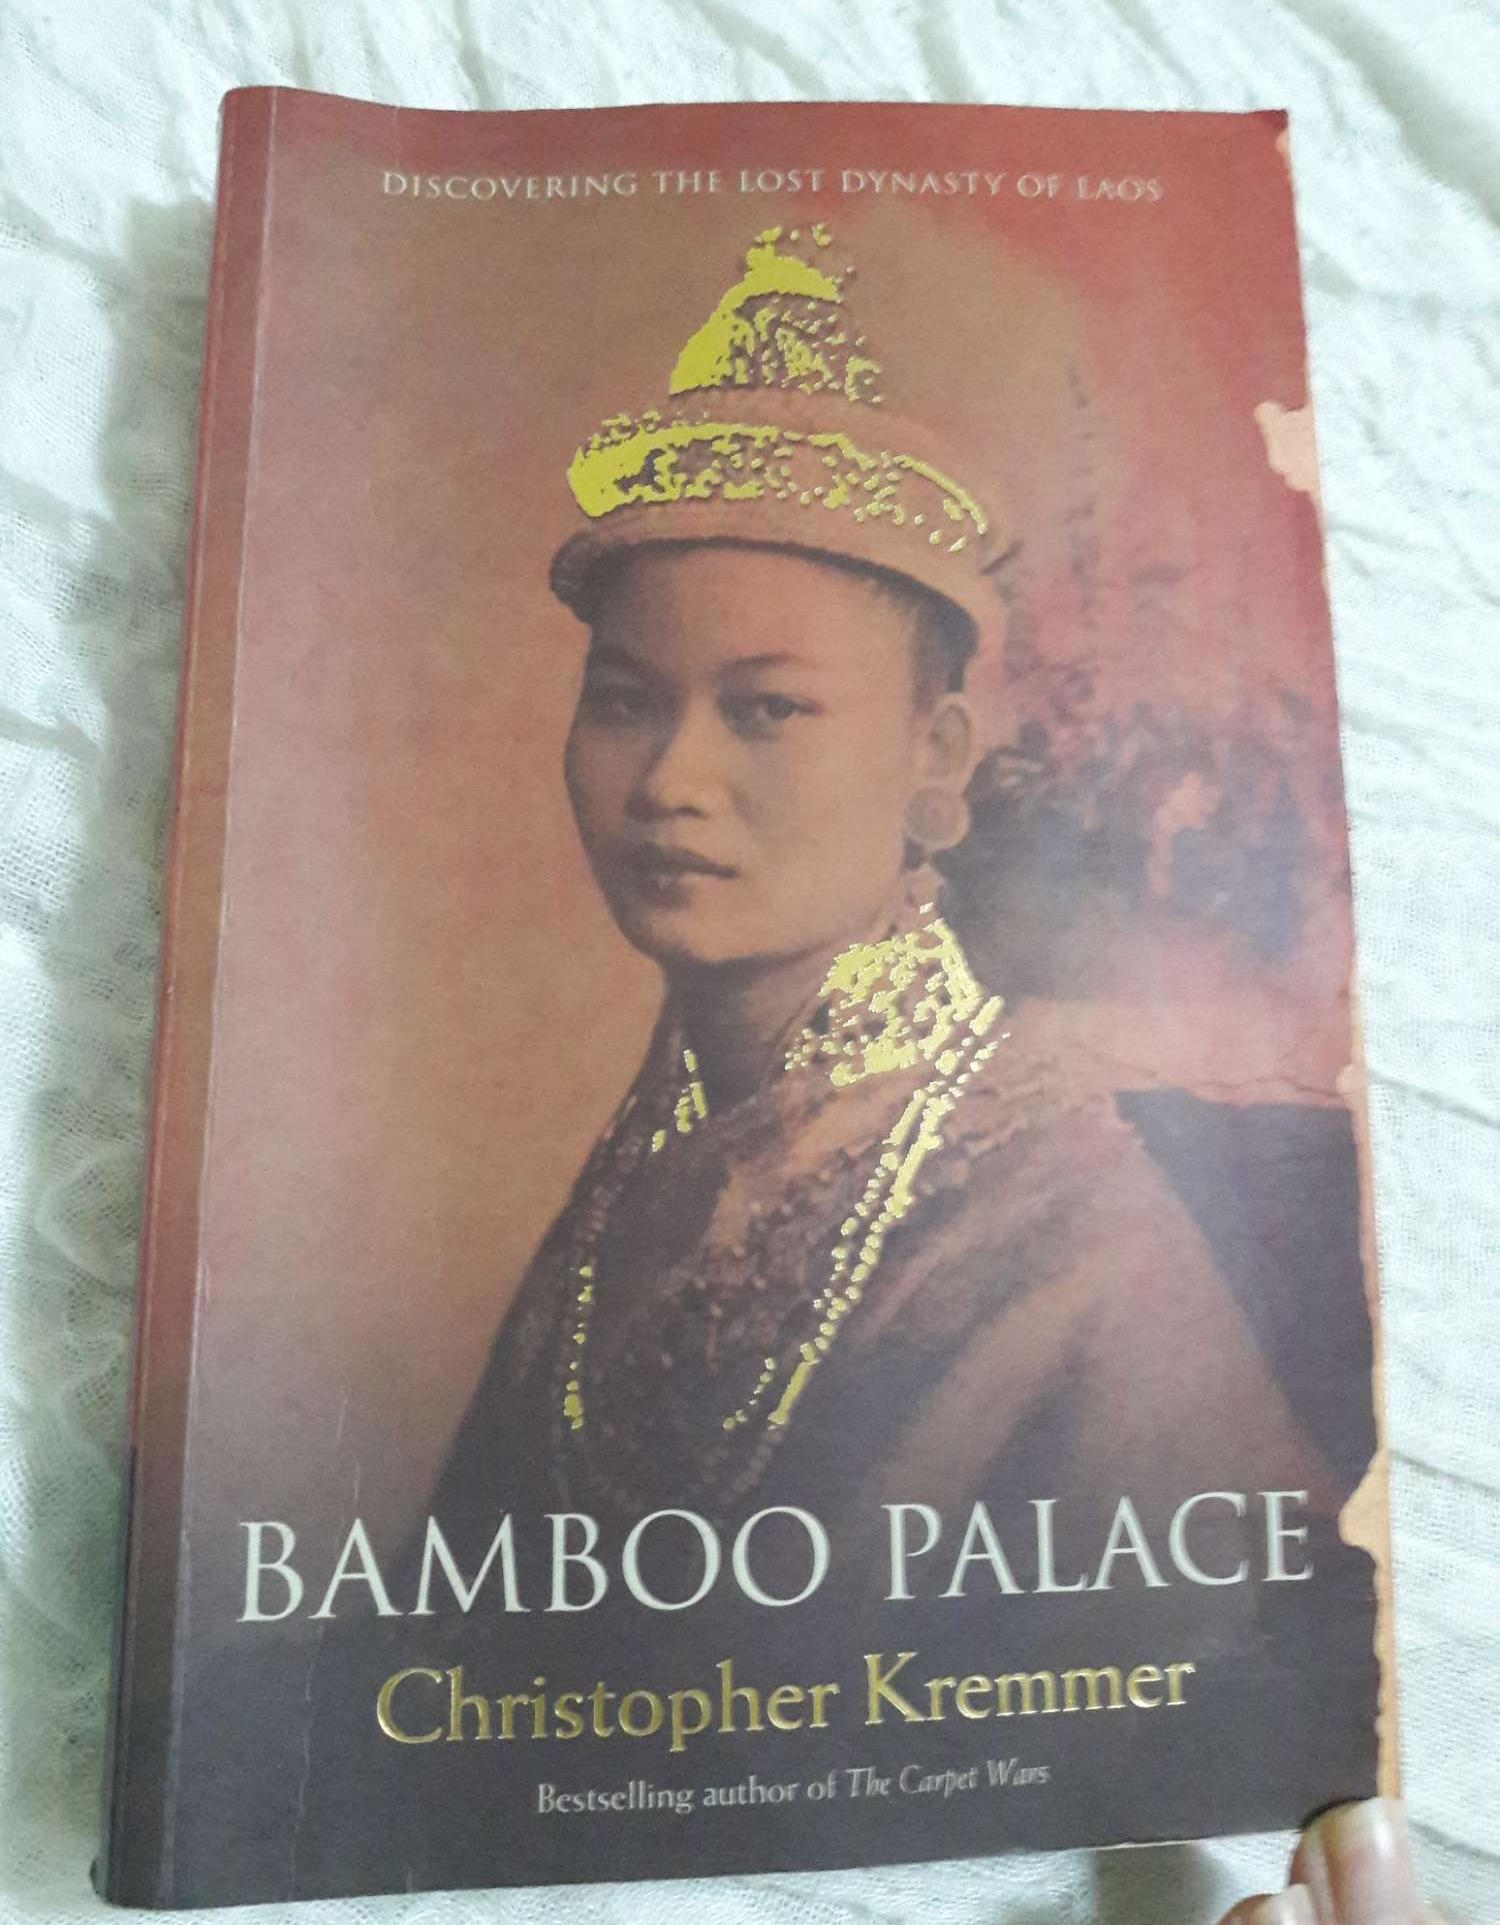 The Bamboo Palace